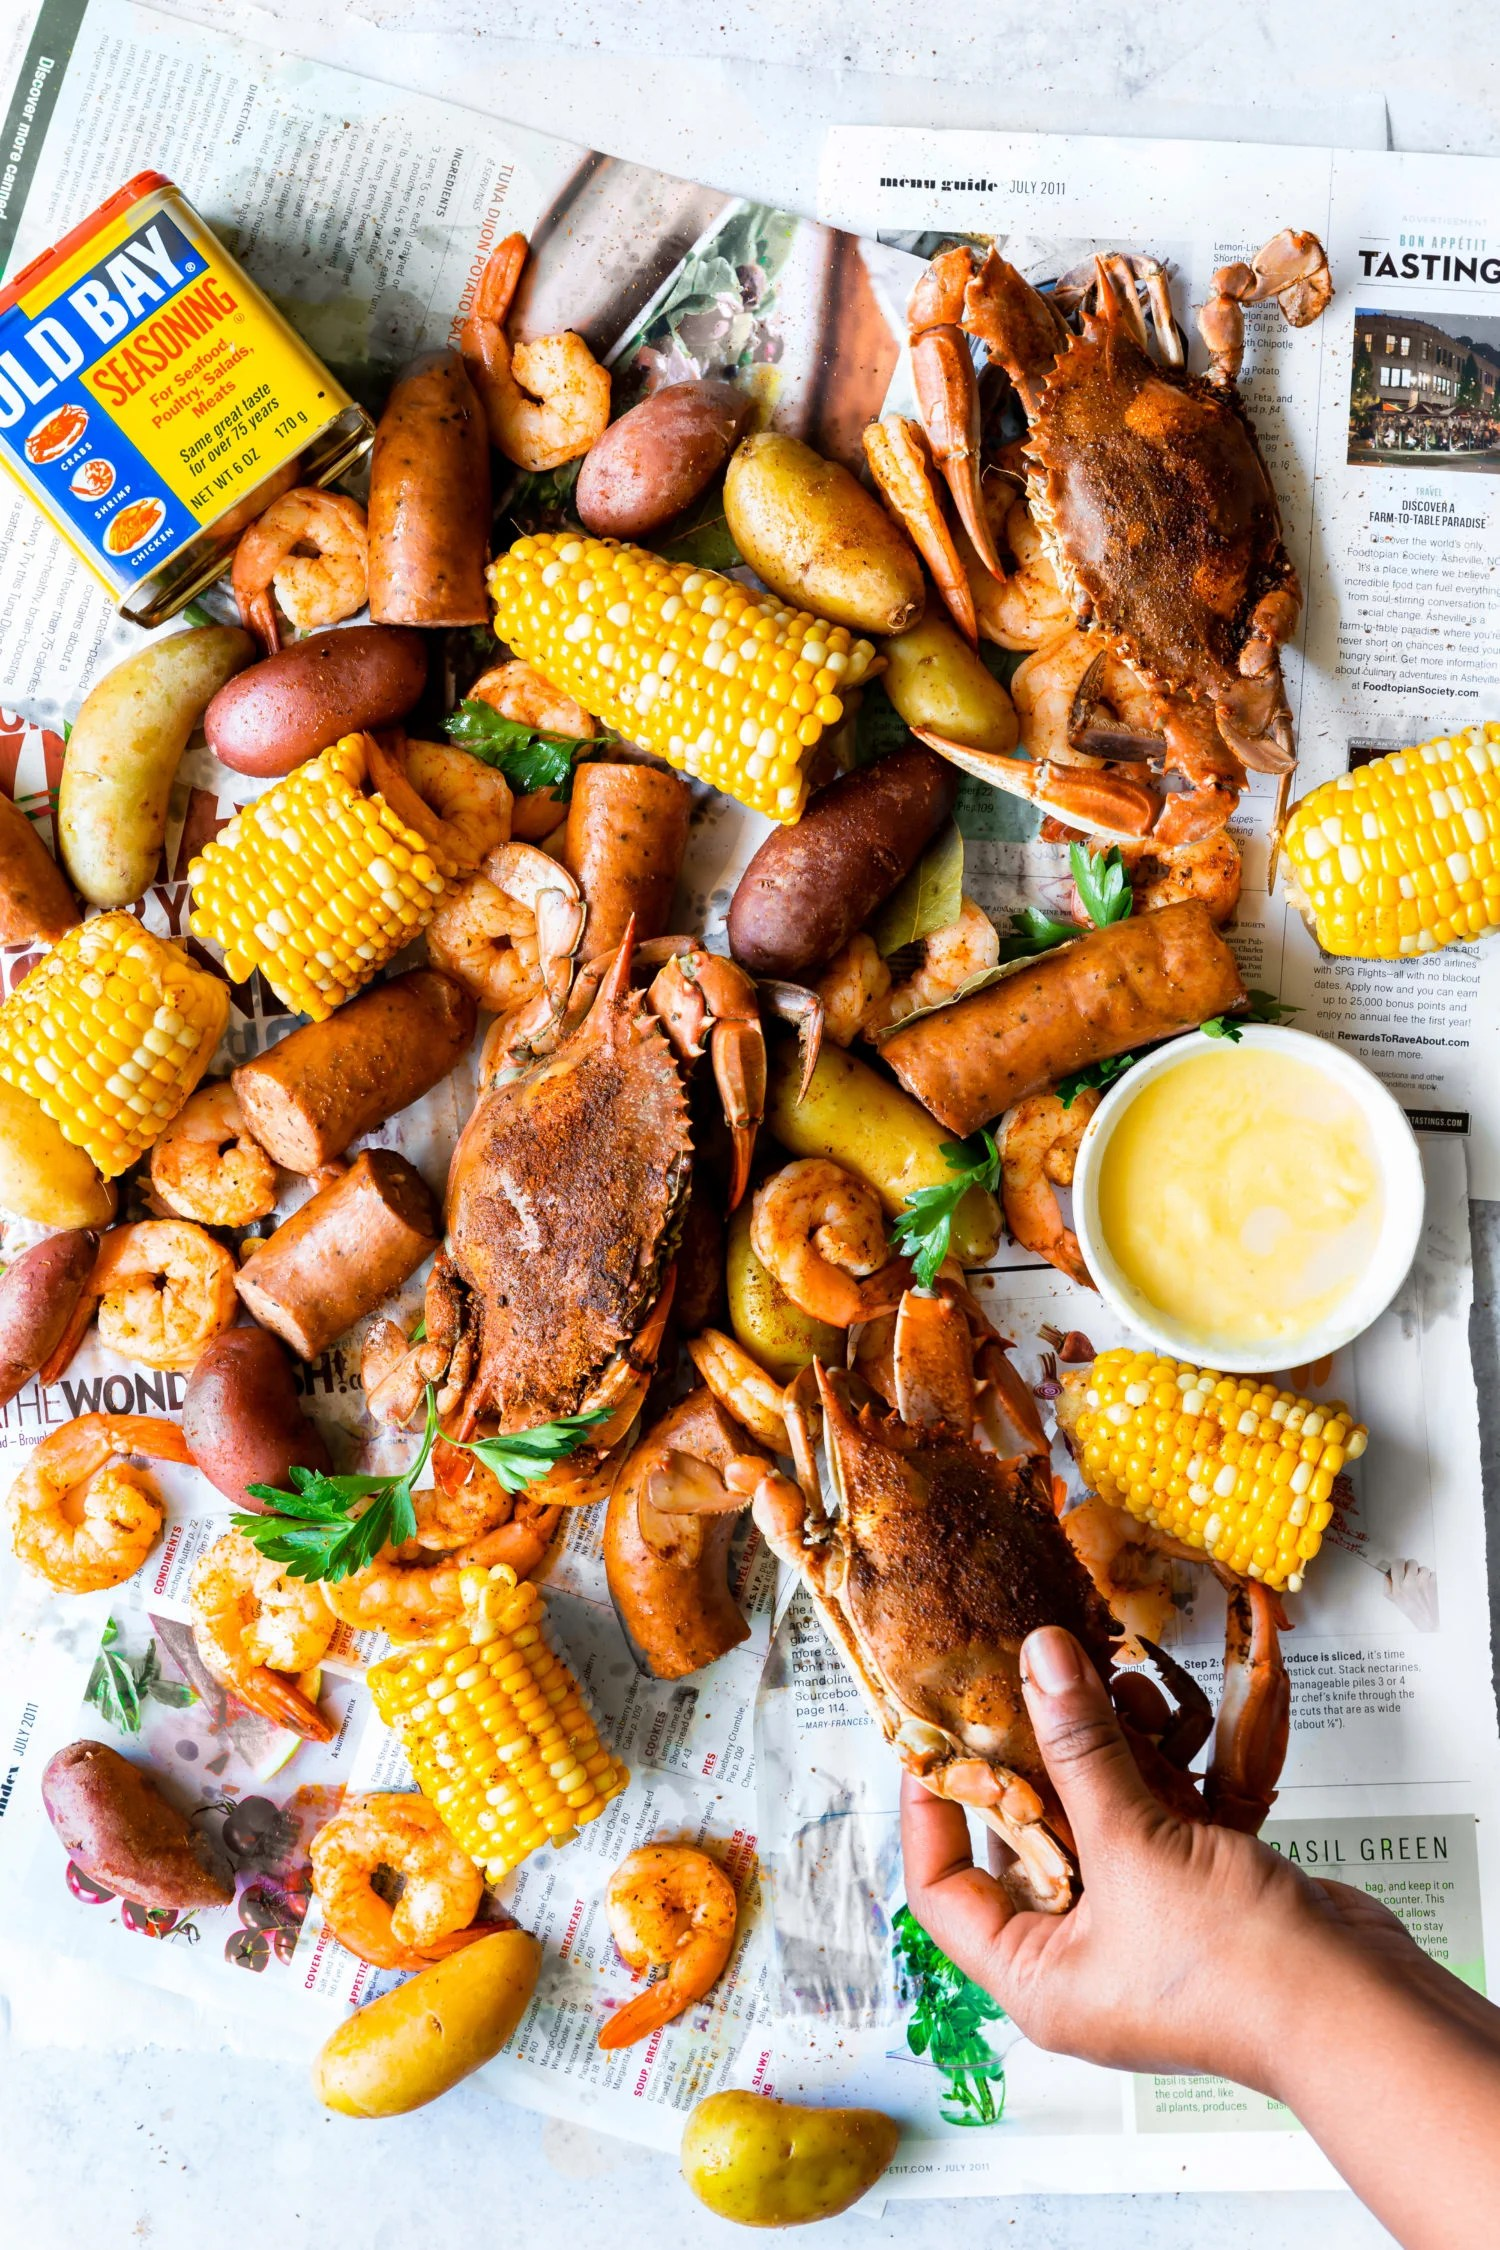 Labor Day Recipes - Overhead shot of hand picking up blue crab at low country boil gathering